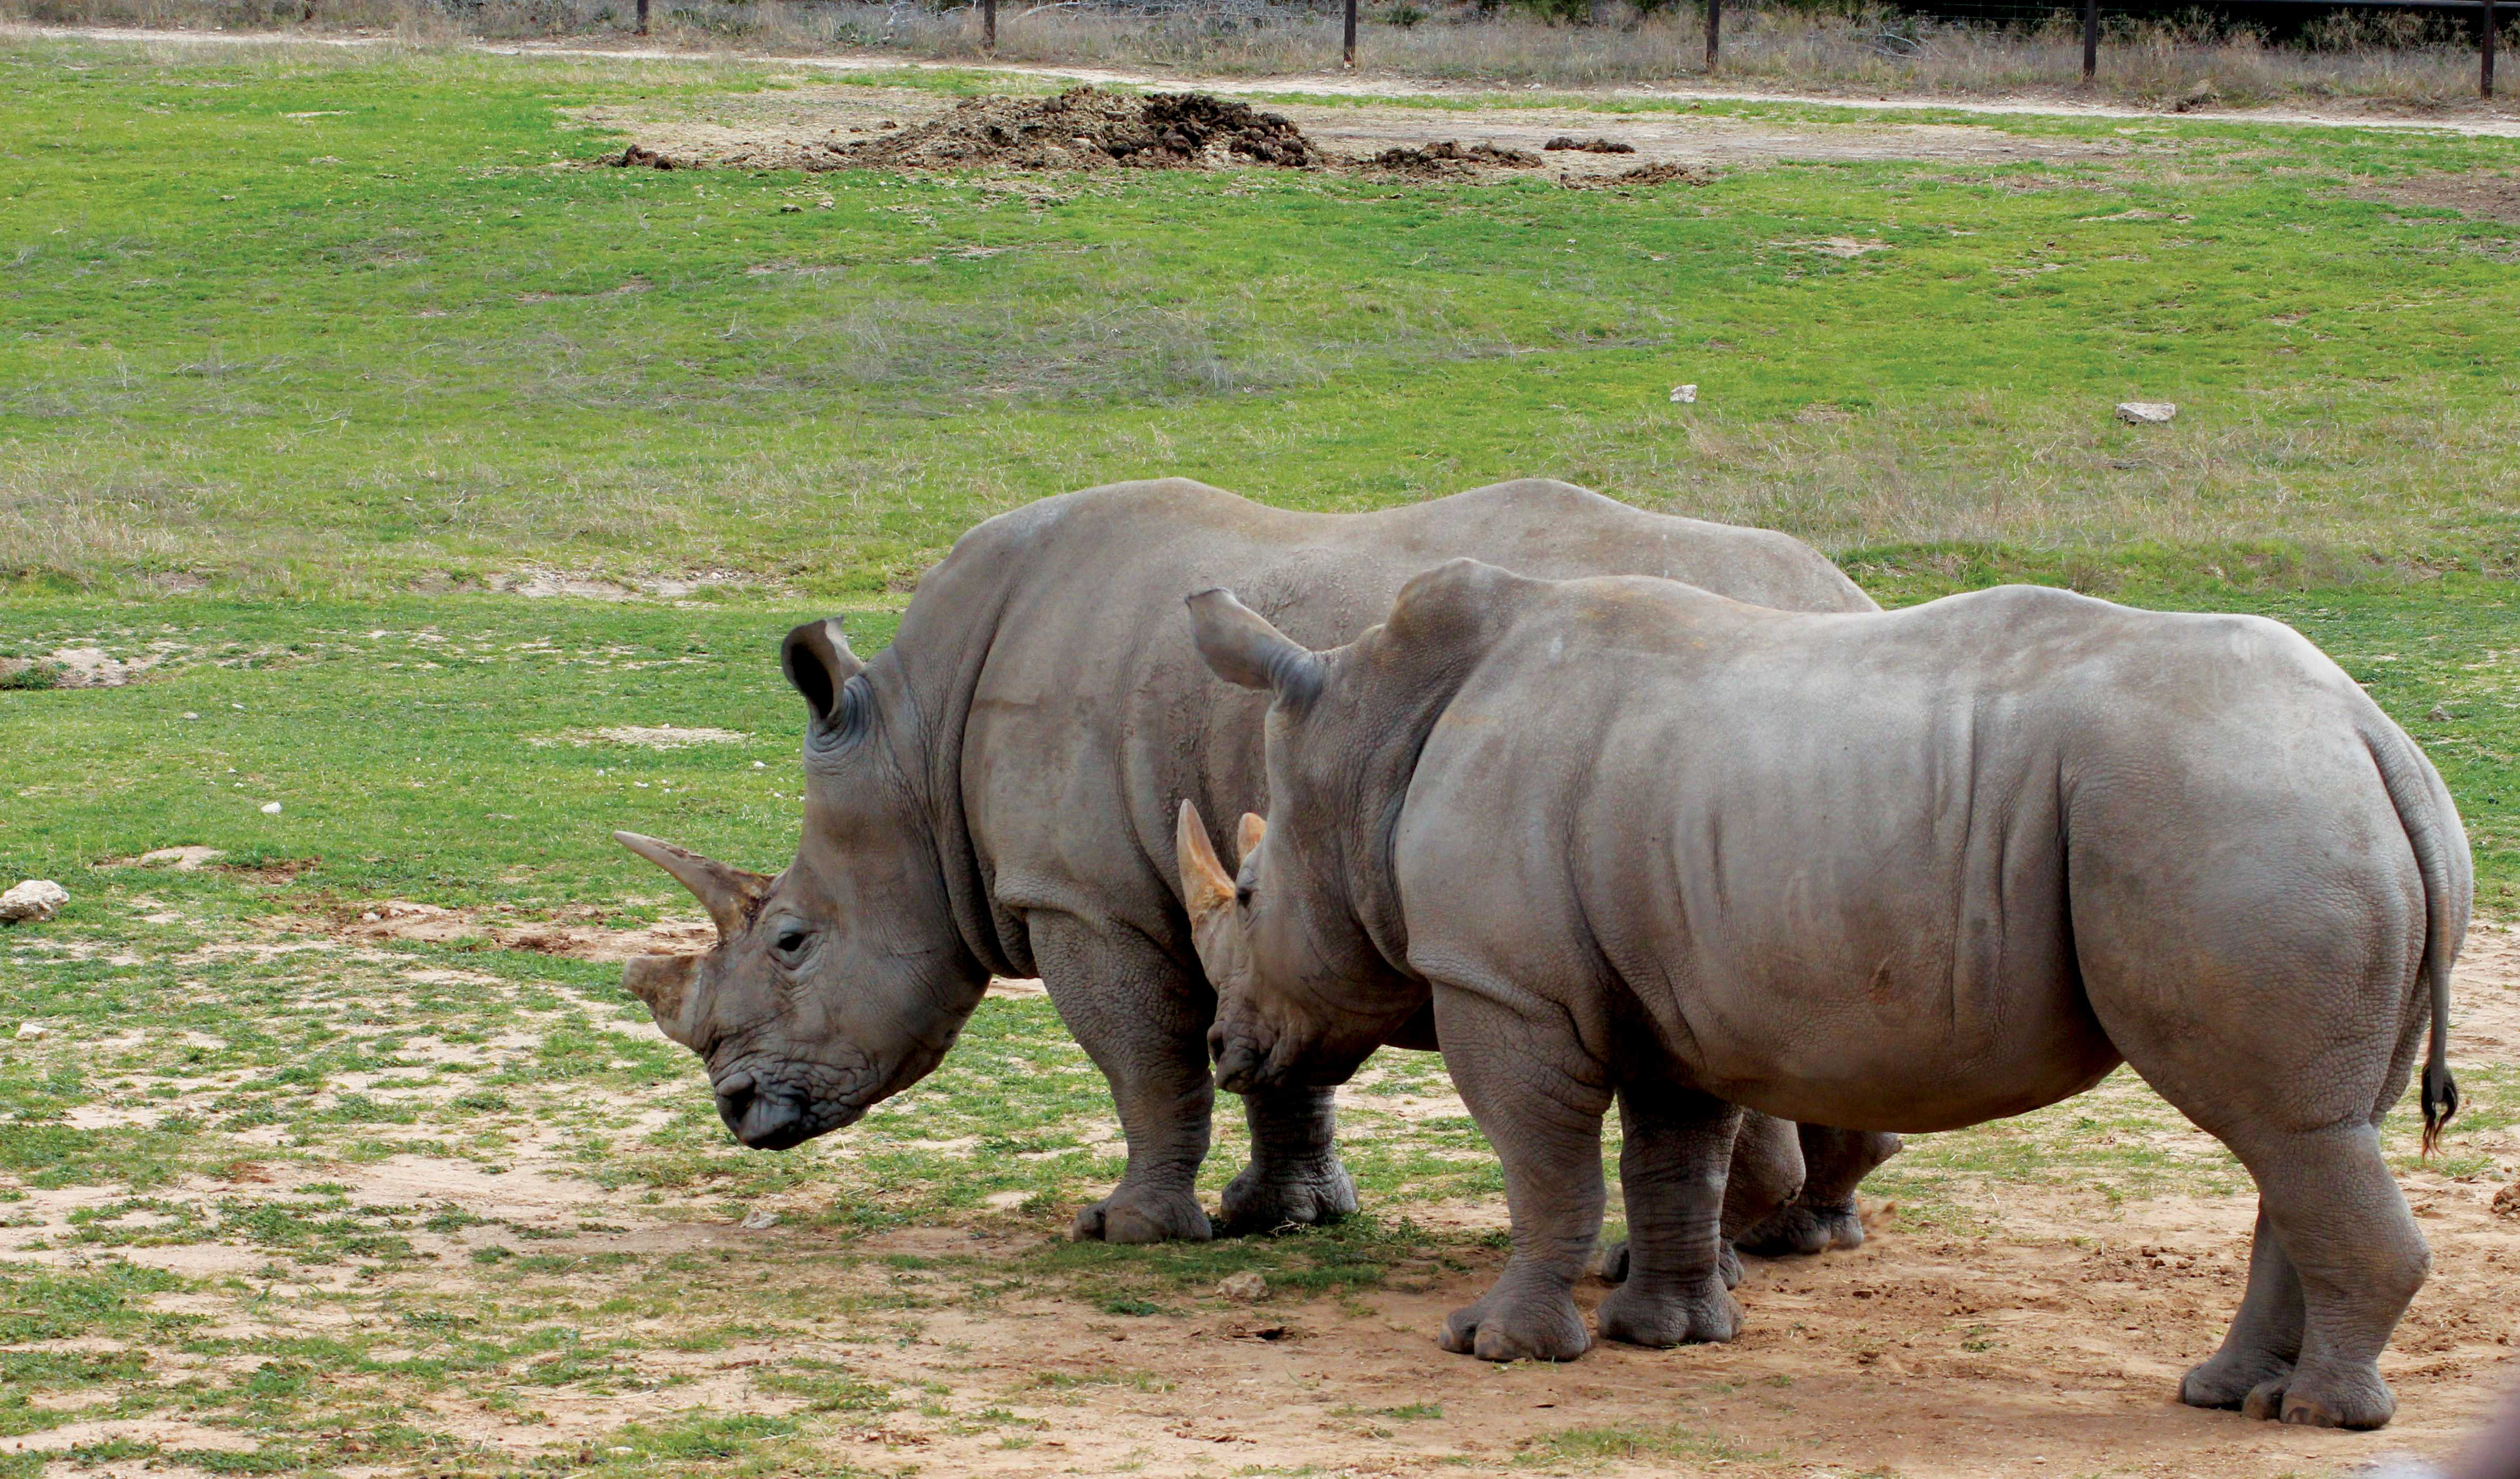 Fossil Rim is home to these two black rhinos, which are listed as critically endangered.